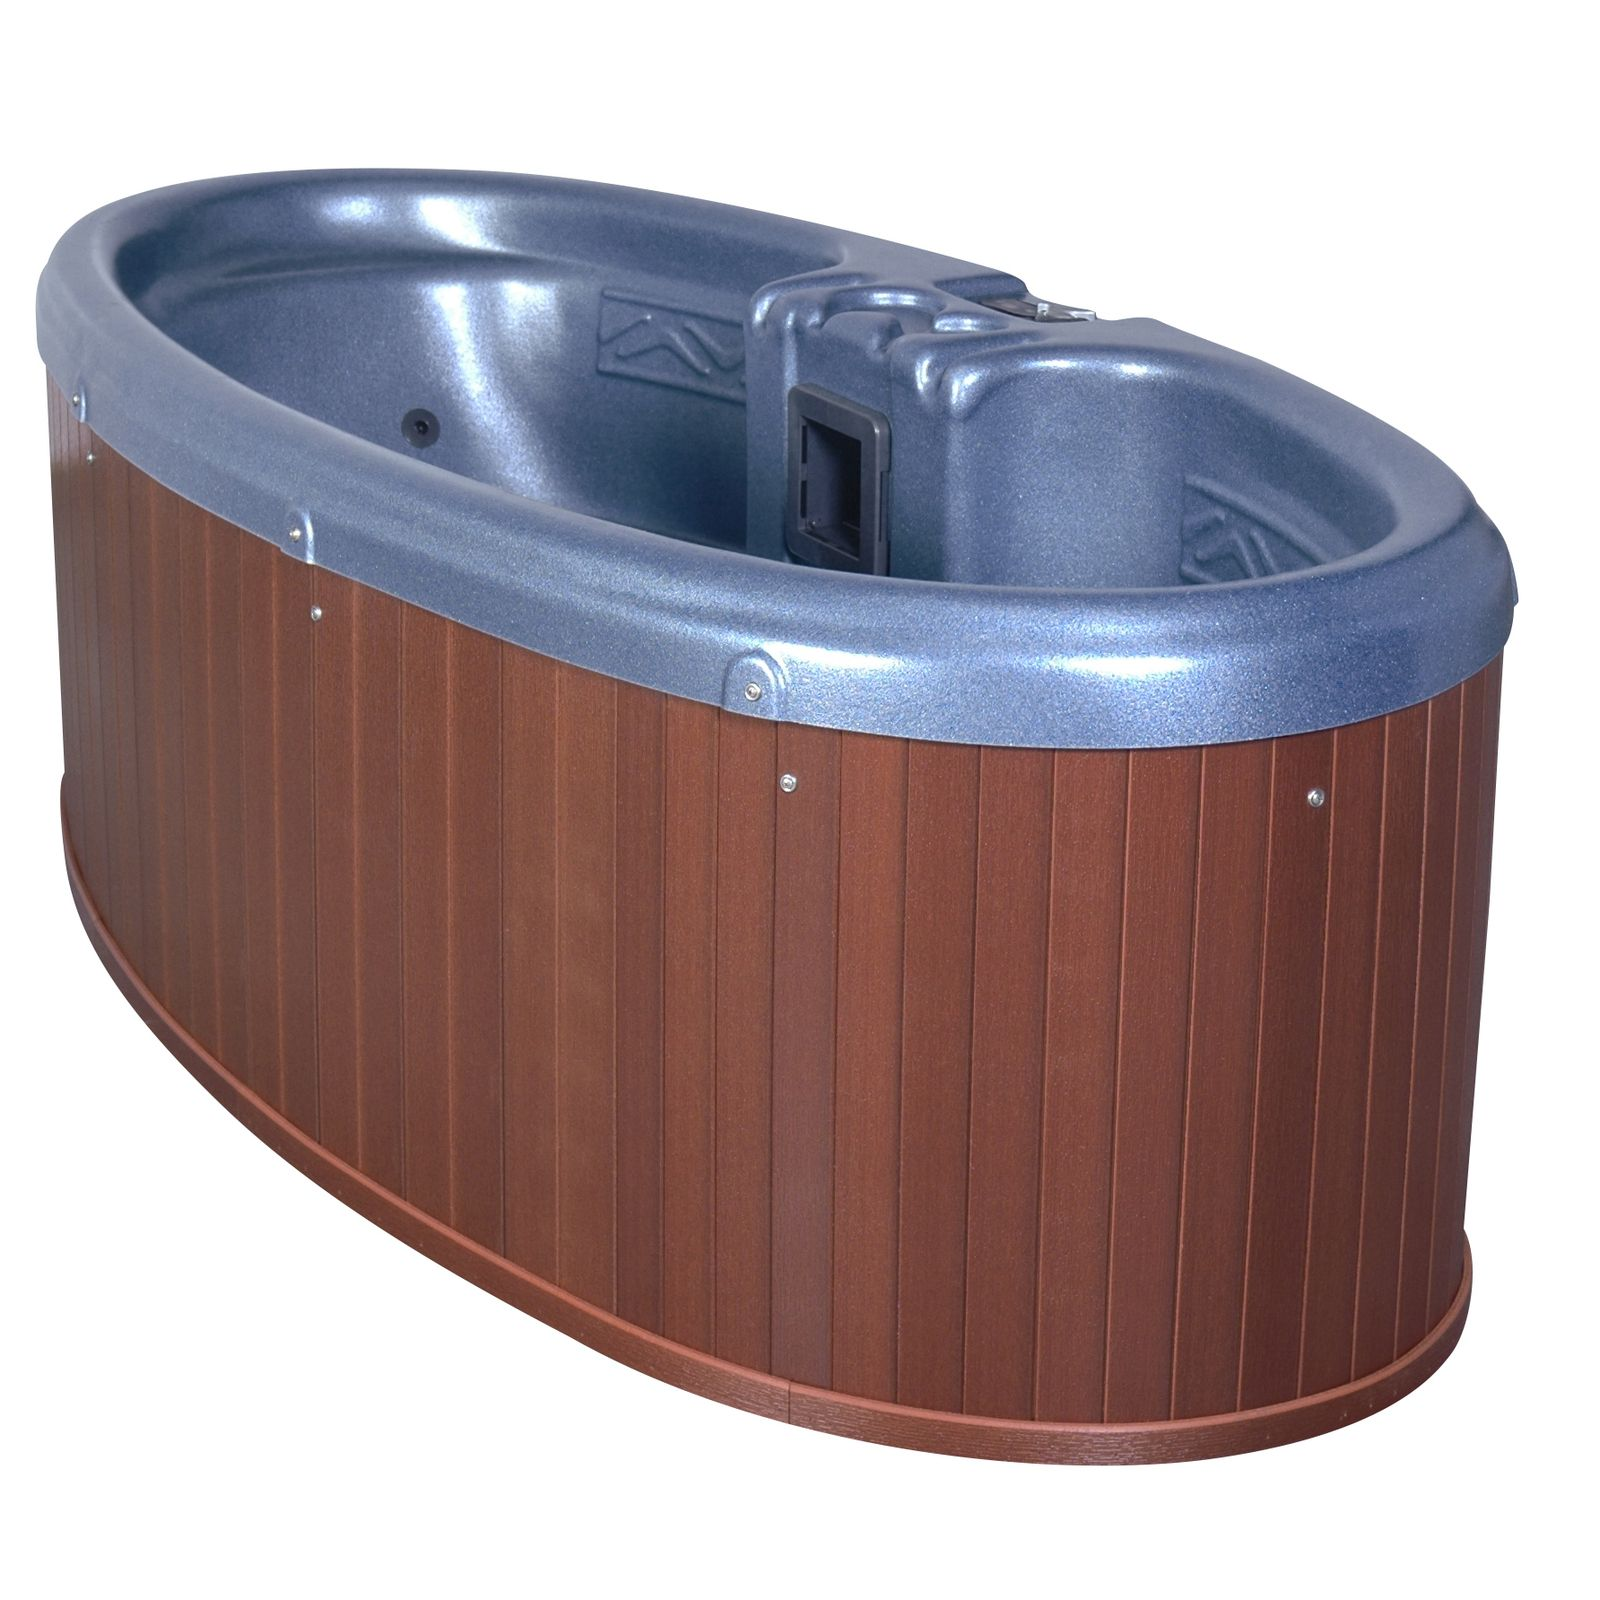 Product Information Original Price 5 499 99 Relieve Tired Achy Muscles With Inflatable Hot Tubs Hot Tub Small Hot Tub